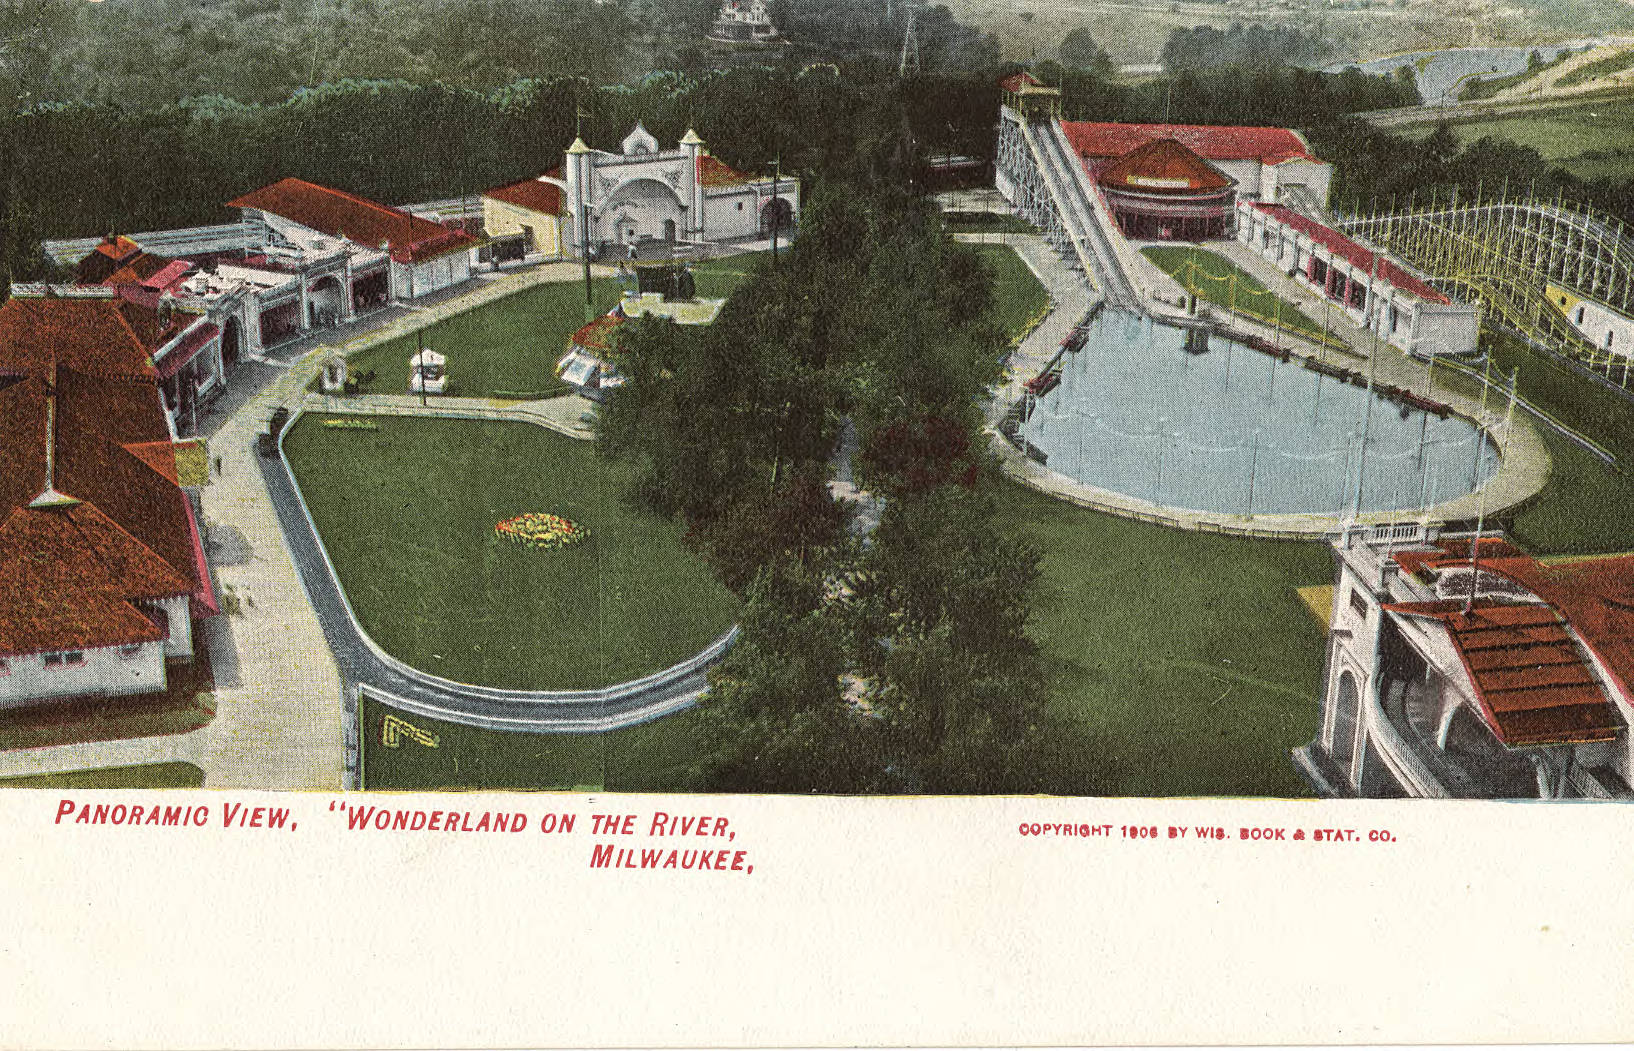 This postcard provides an aerial view of the Wonderland amusement park at the beginning of the 20th century, first opened as Lueddemann's-on-the-River in 1872.